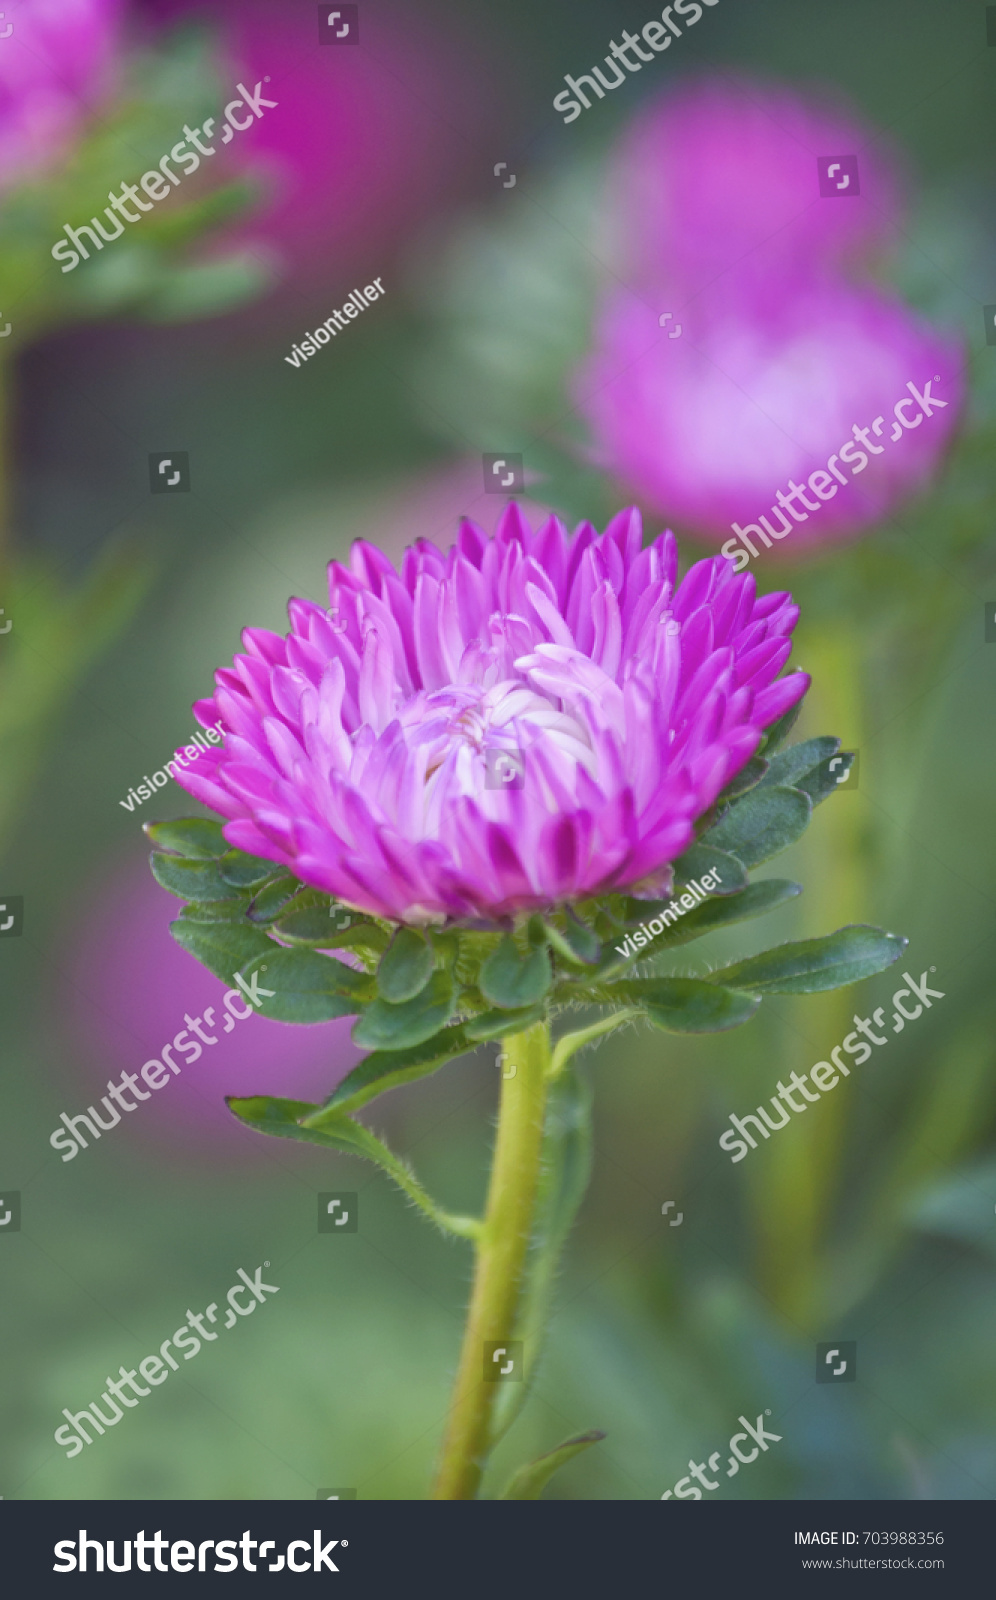 Background Of Bright Pink Aster Flowerspink Aster Flower Isolated